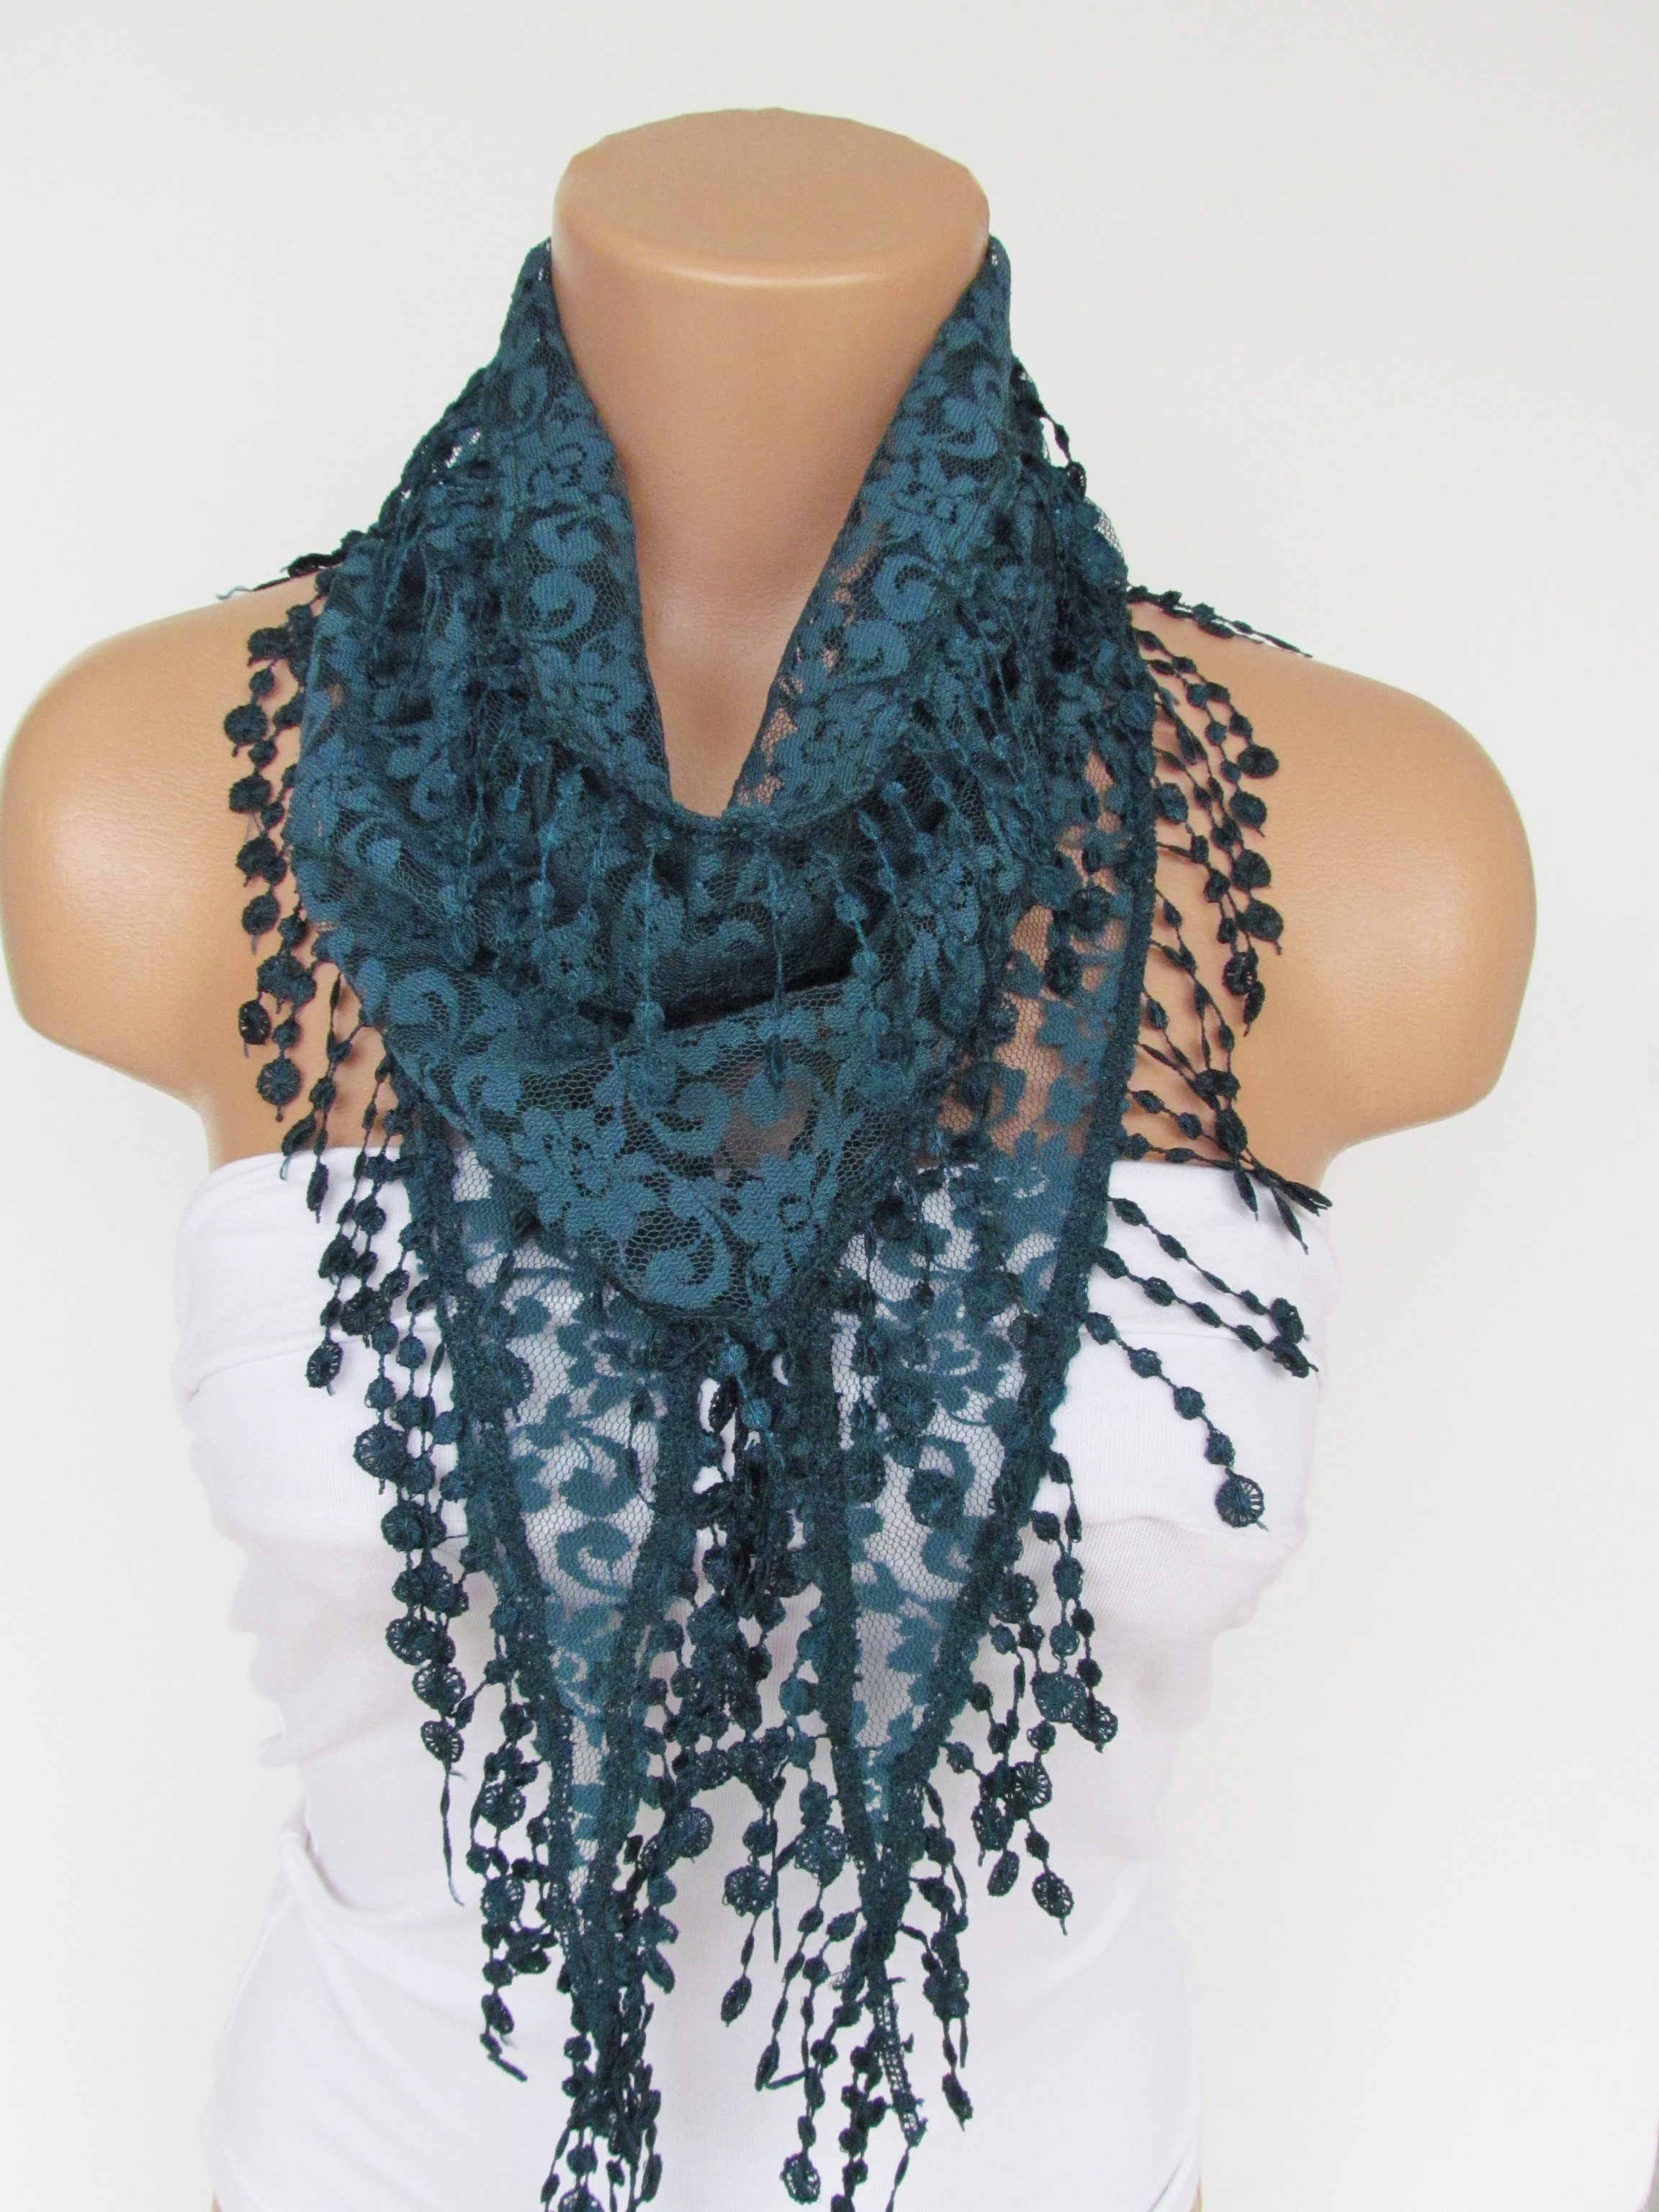 e2627b2b76075 Teal Green Lace Scarf With Fringe New Season Scarf-Headband-Necklace- Infinity  Scarf- Accessory-Long on Luulla